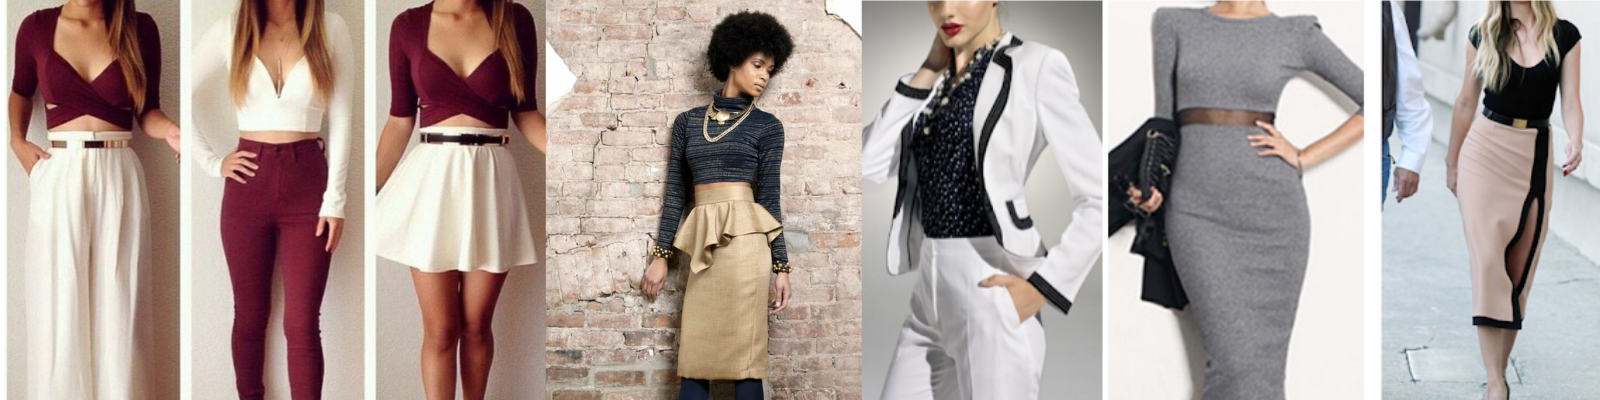 LGFG women's fashion available for wholesale distribution